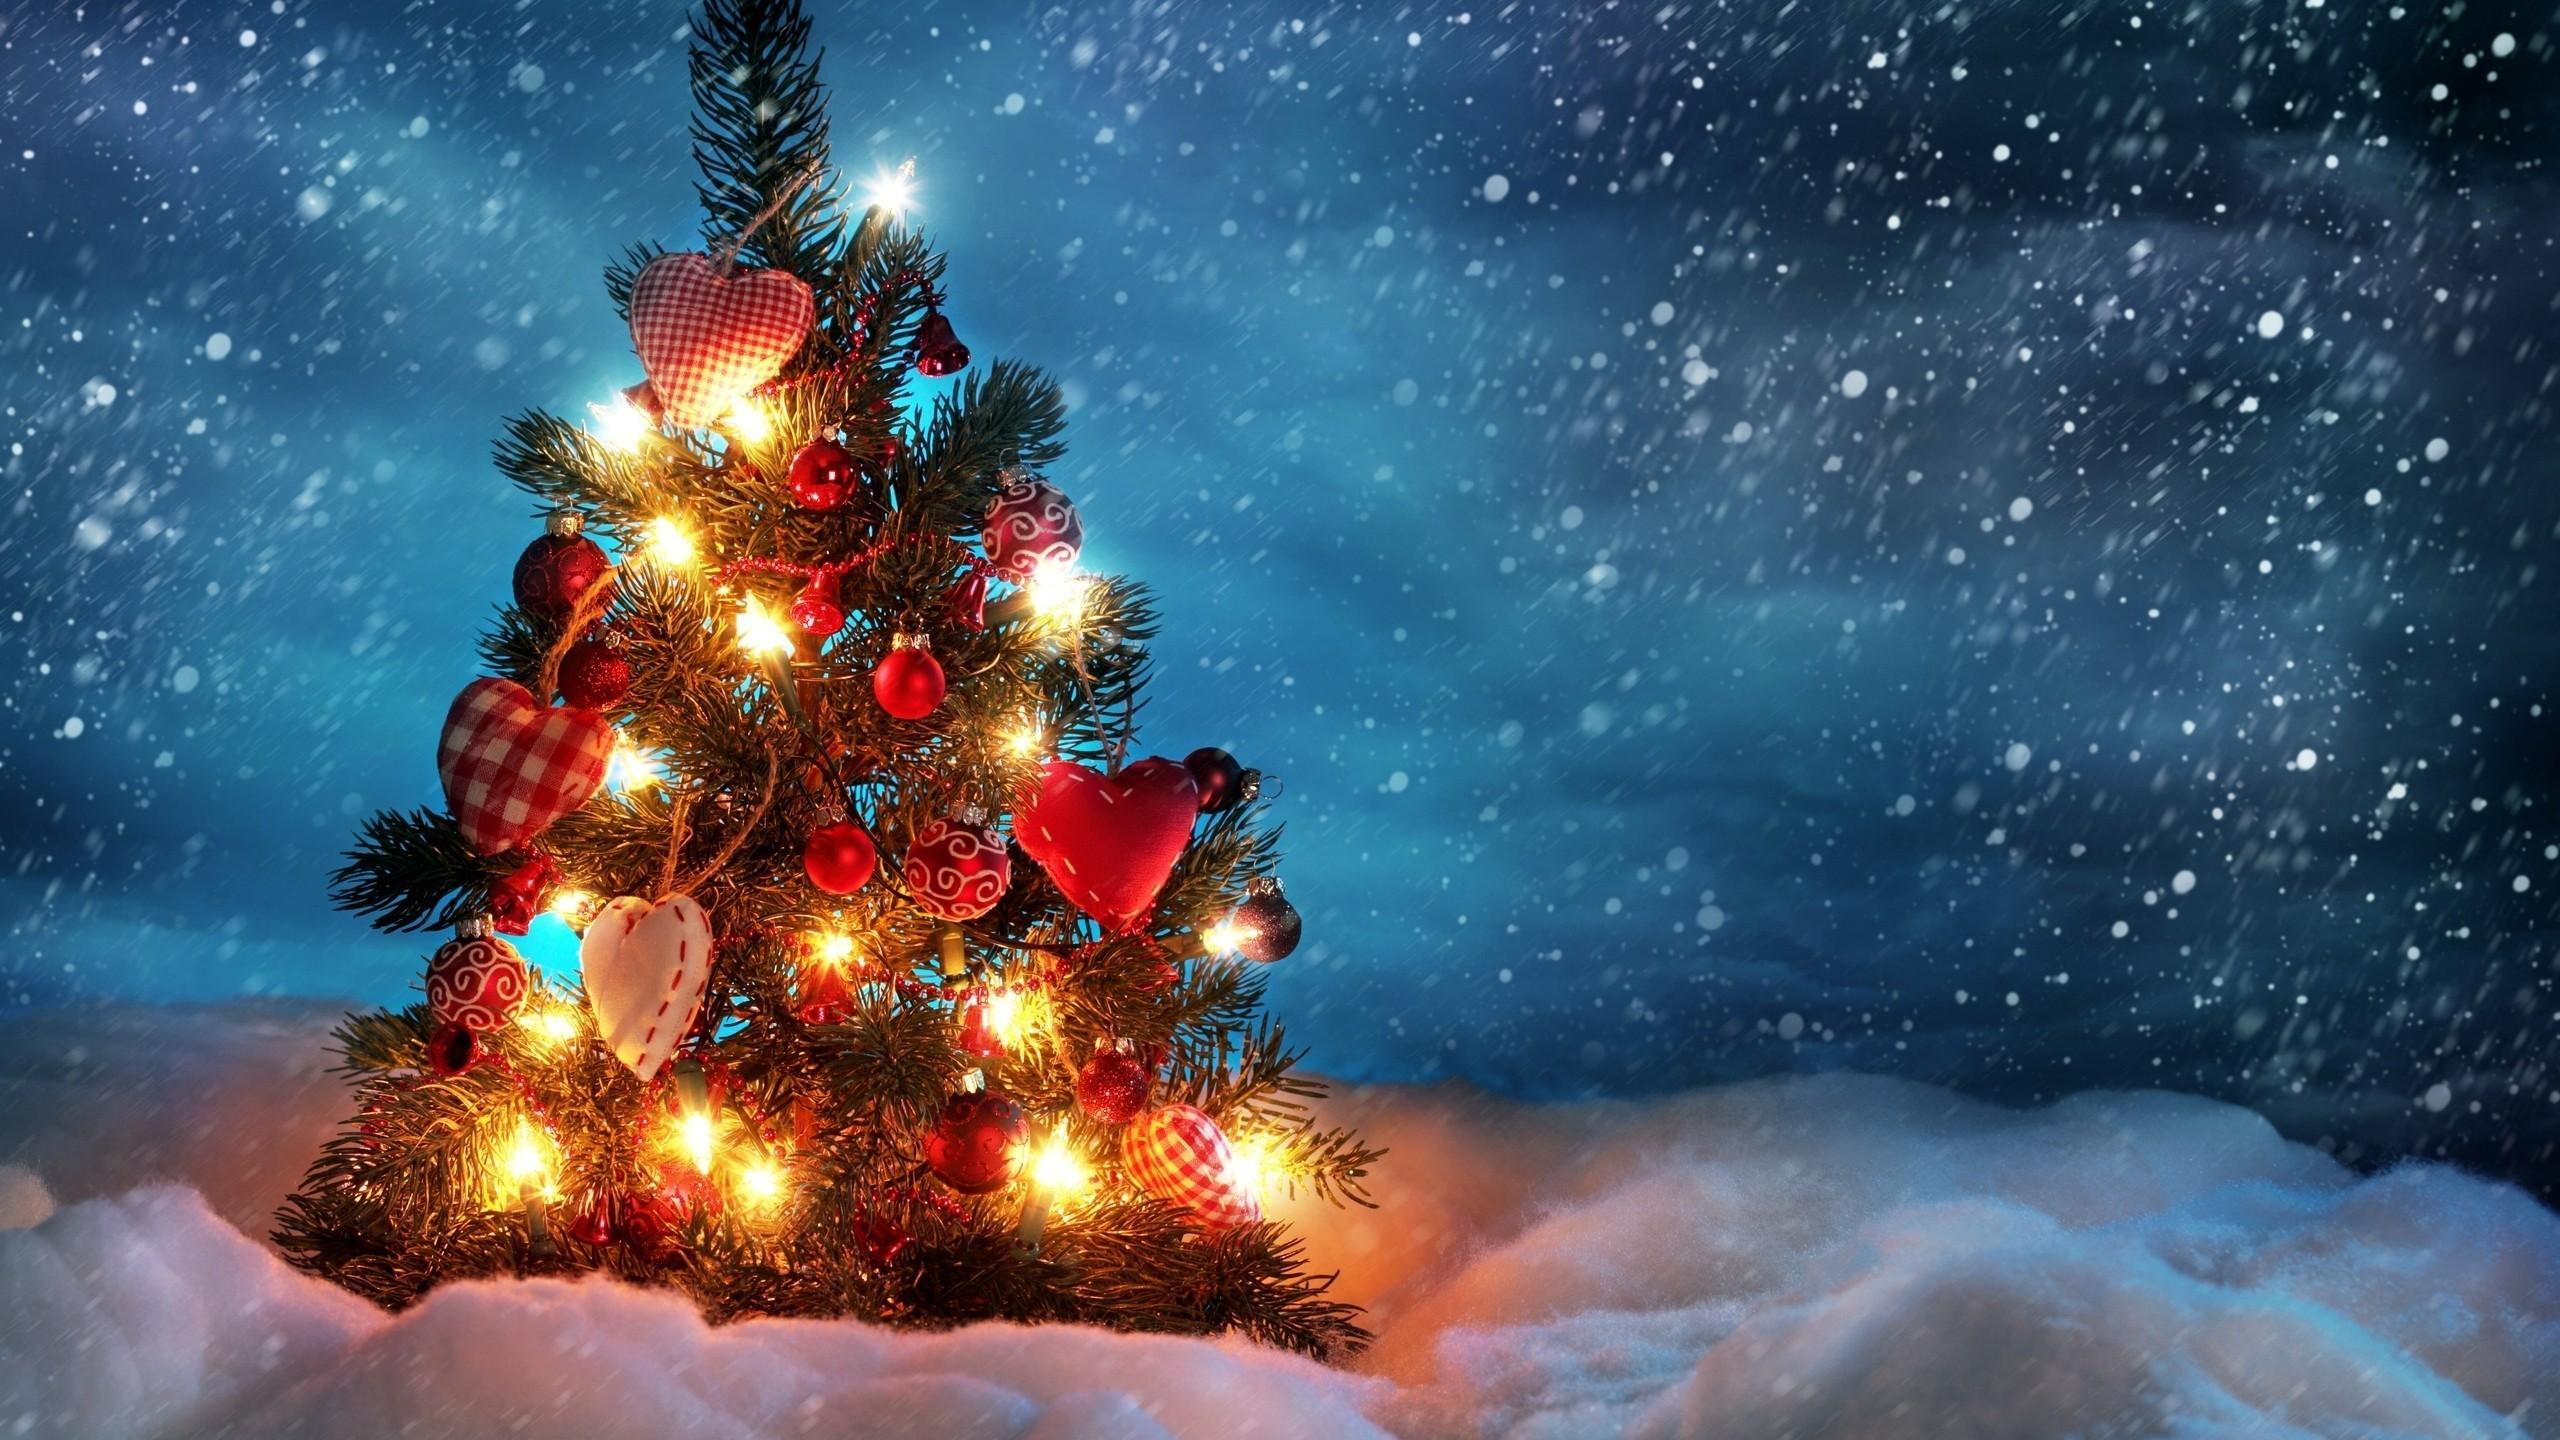 Download 2560x1440 Christmas 2019, Snow, Decorations, Light